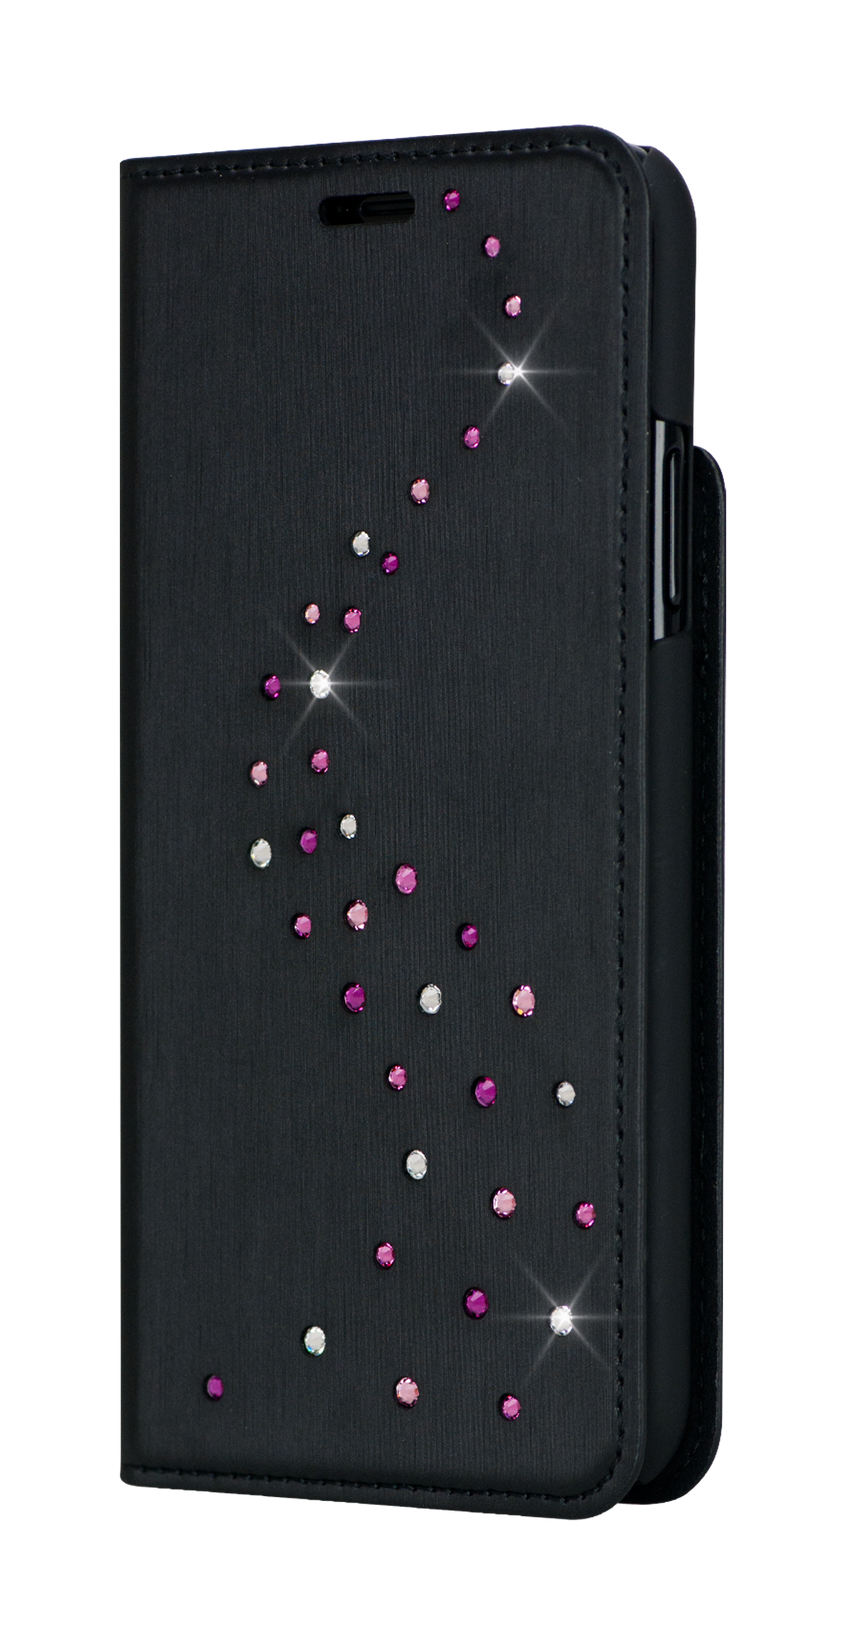 Primo - Black Metallic Fabric Wallet Case - Milky Way Swarovski Crystals for iPhone X & XS - Bling My Thing - Swarovski Protective iPhone Case